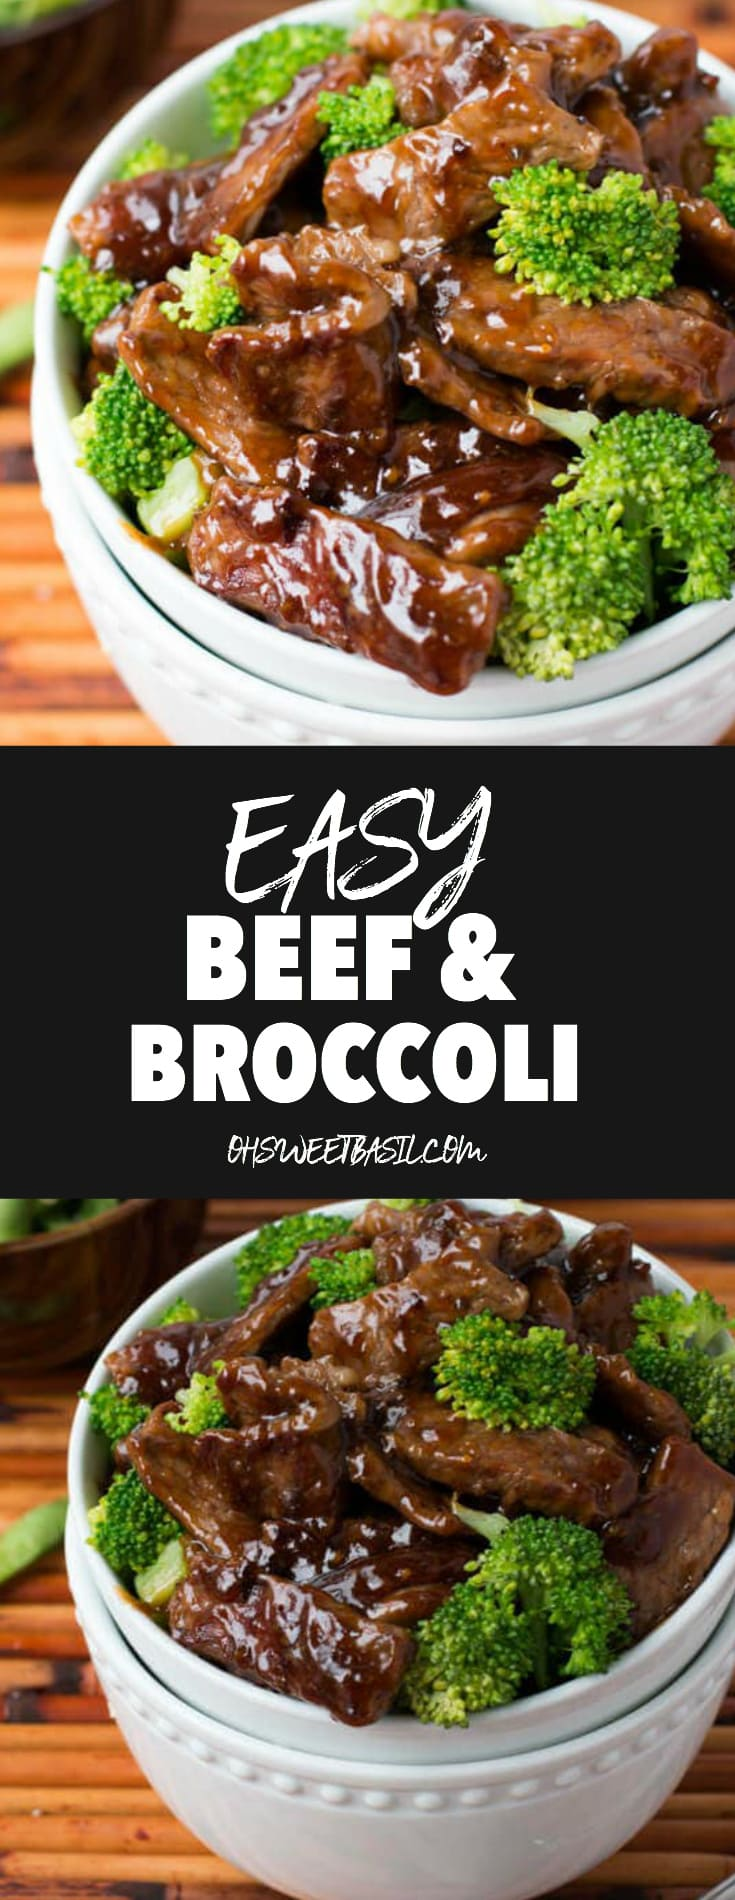 A white bowl with beef and broccoli